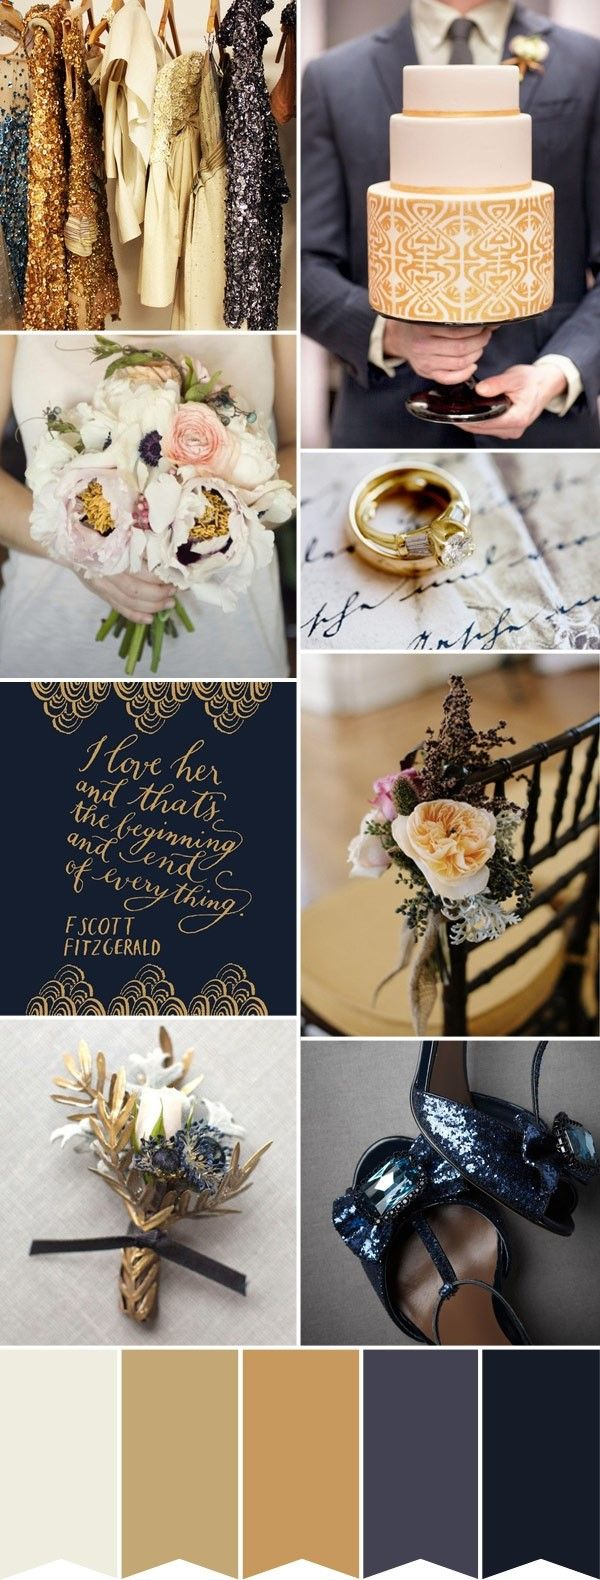 Fall in love with a beautiful gold and navy color palette. | Mary Kay